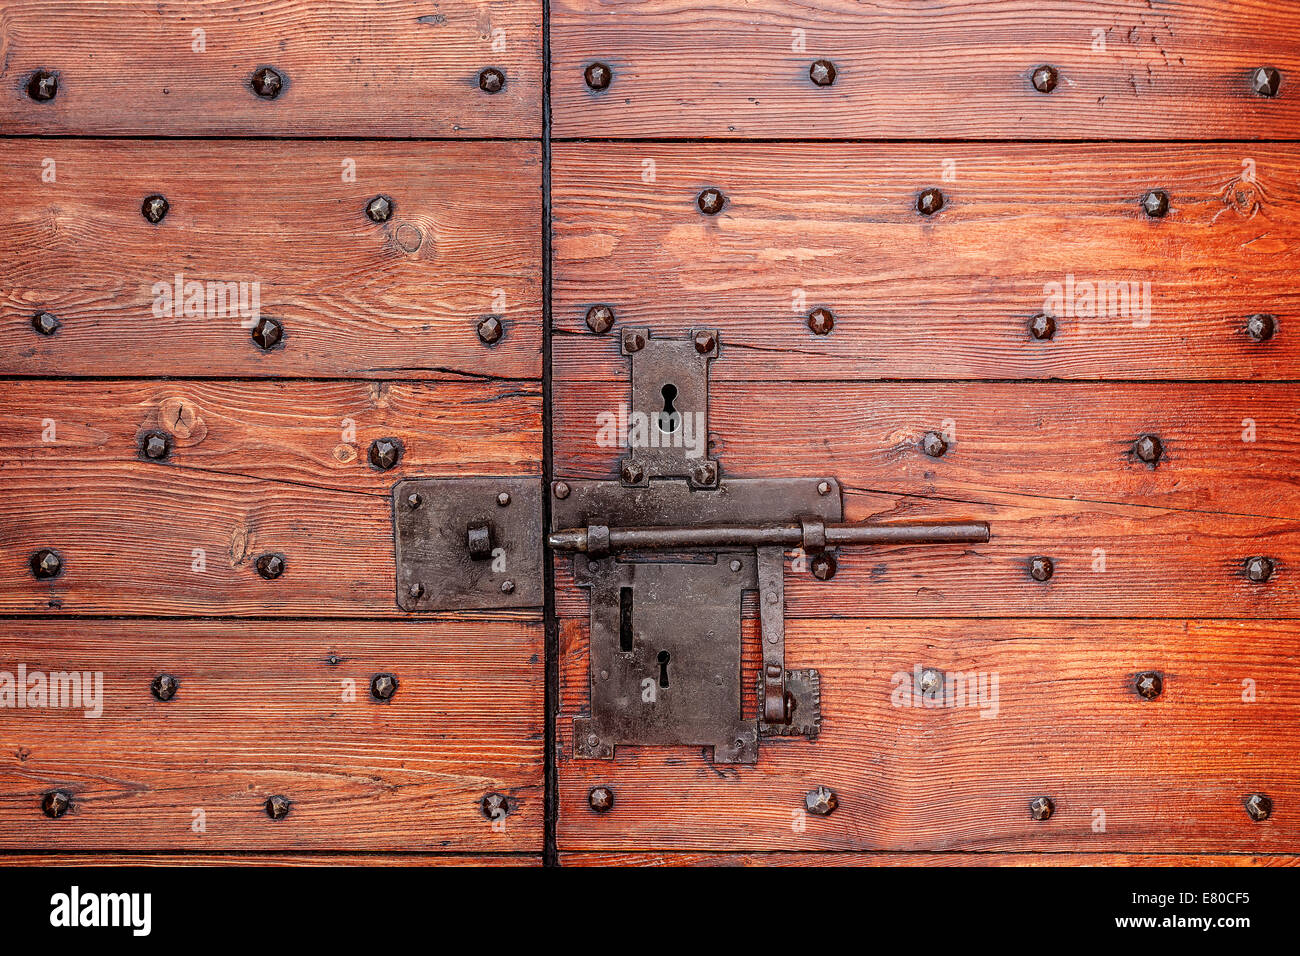 Old red wooden door with metal lock and bolt. - Stock Image